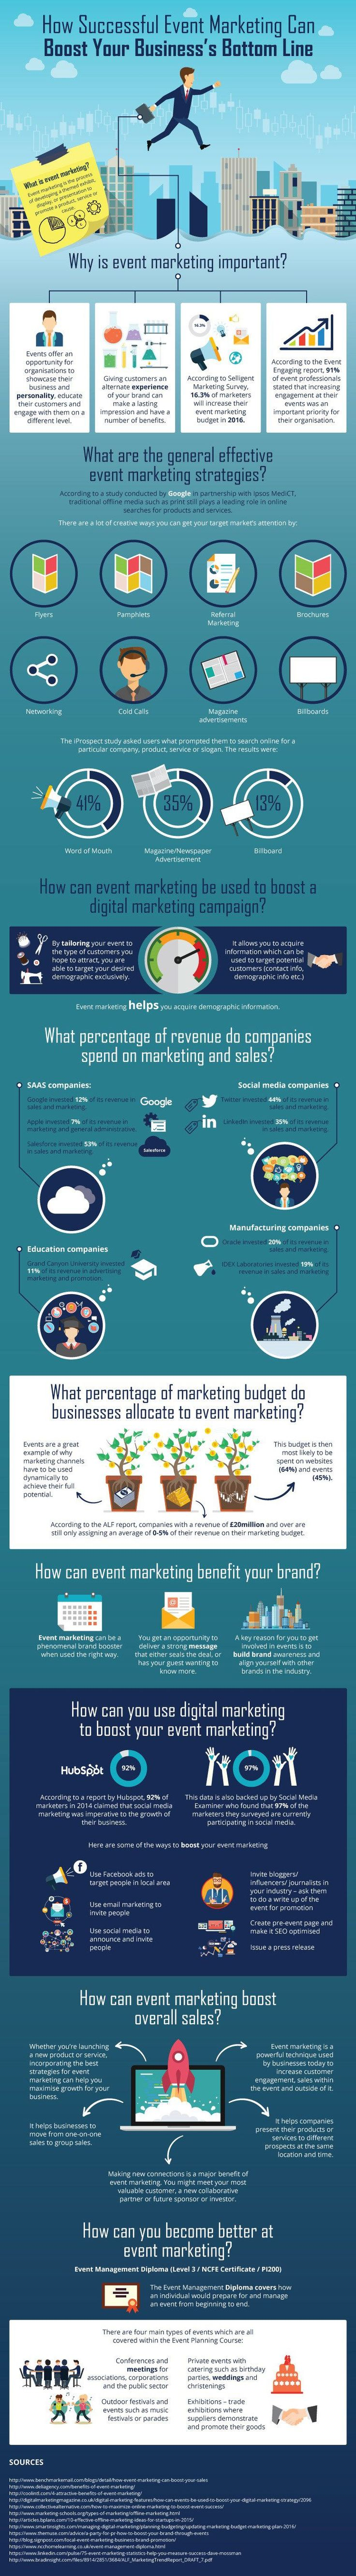 2407 best Email Marketing images by Xyberpro on Pinterest ...